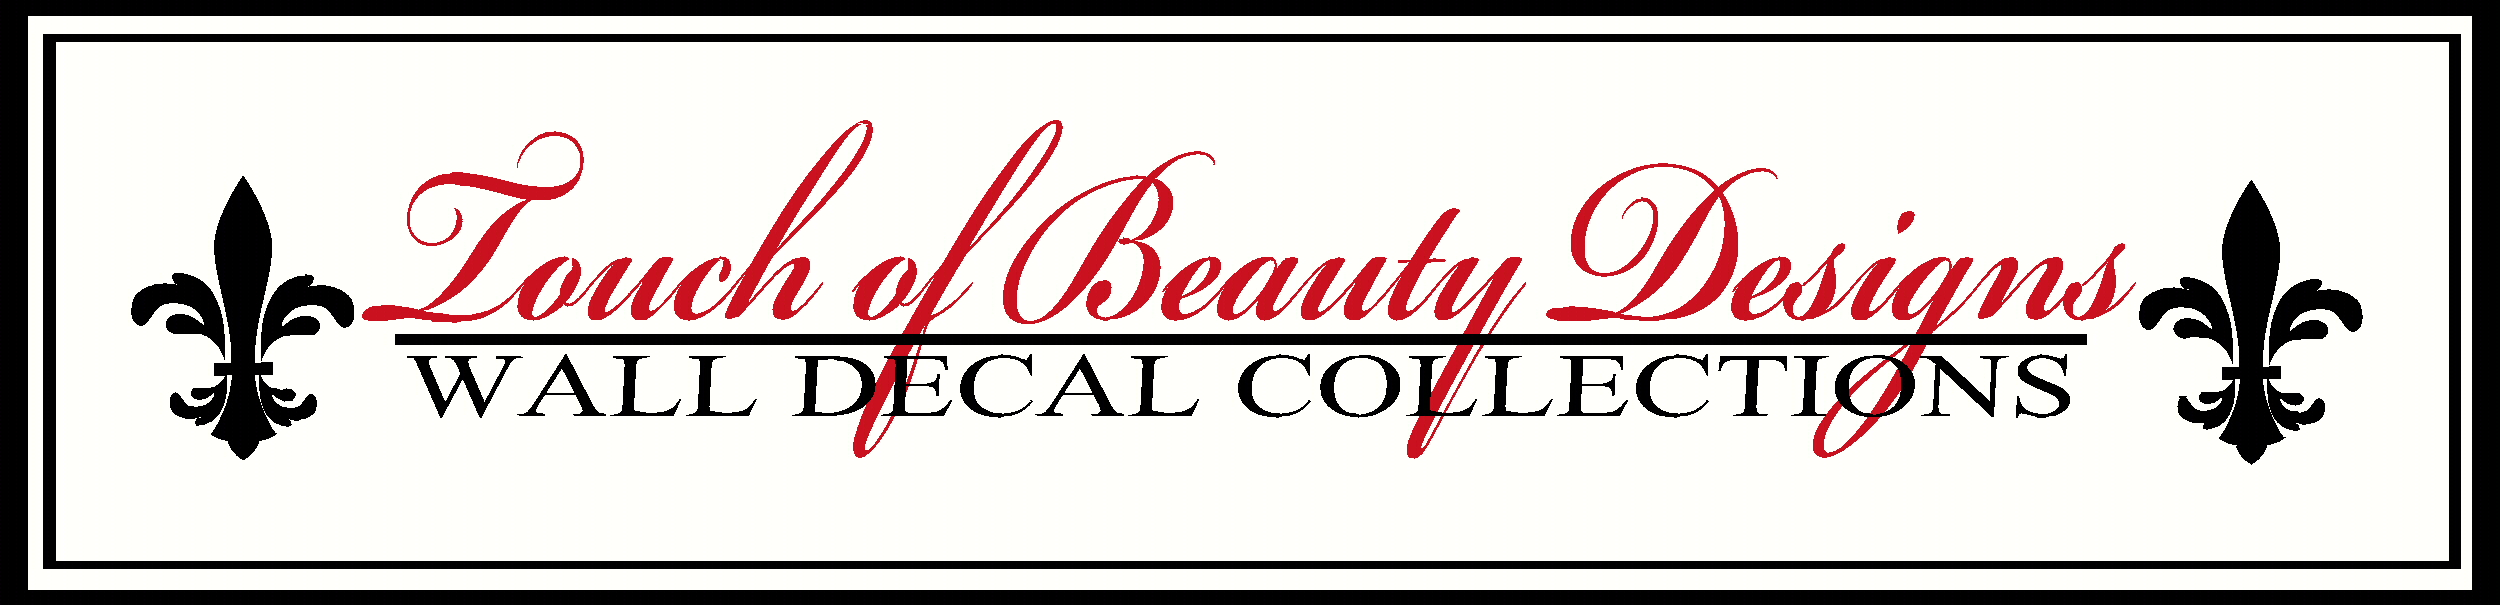 Touch of Beauty Designs Custom Wall Decals